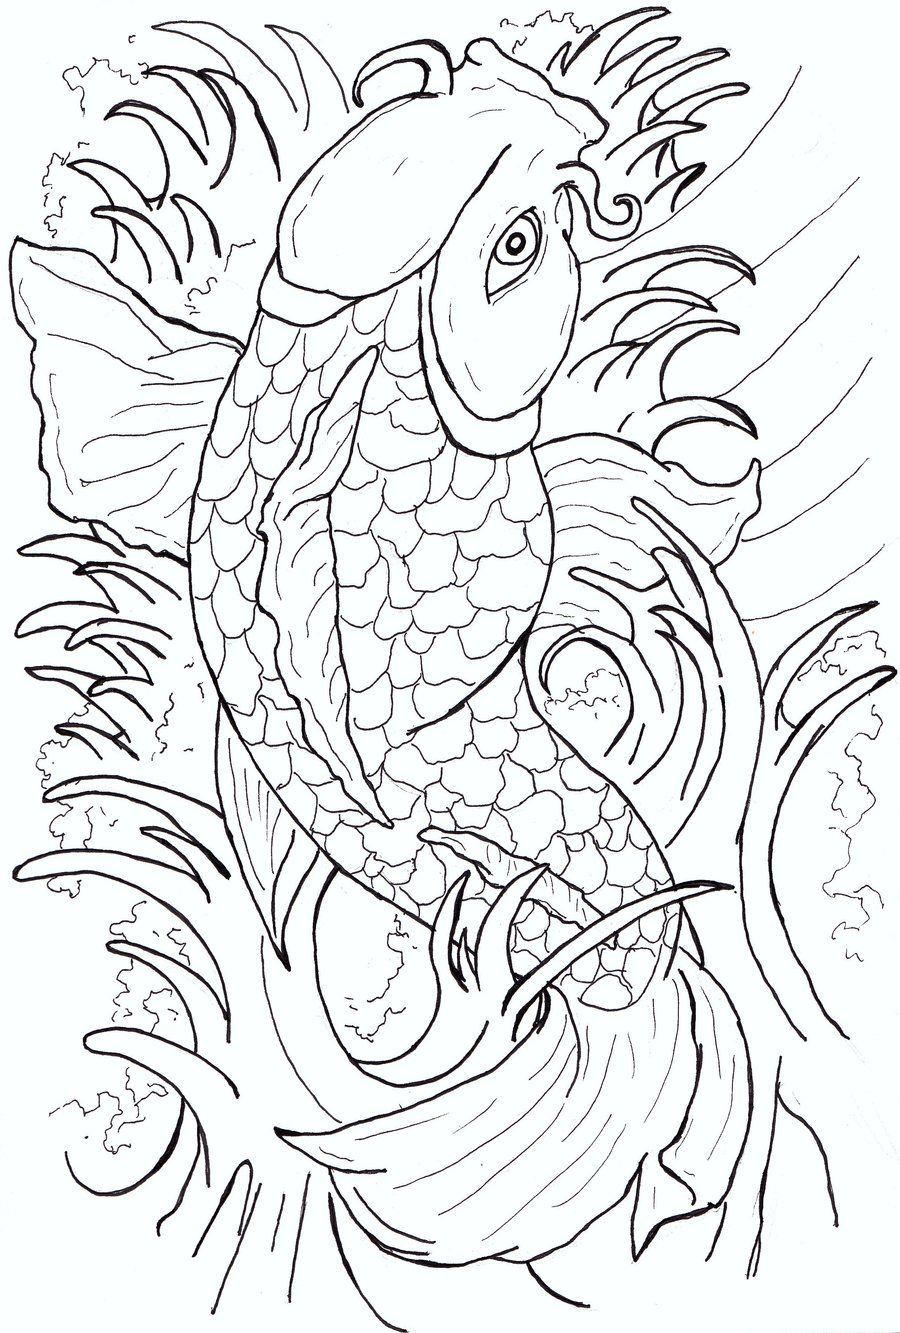 Tattoo Flash Line Drawing Converter : Koi fish tattoo flash line drawings sea pinterest